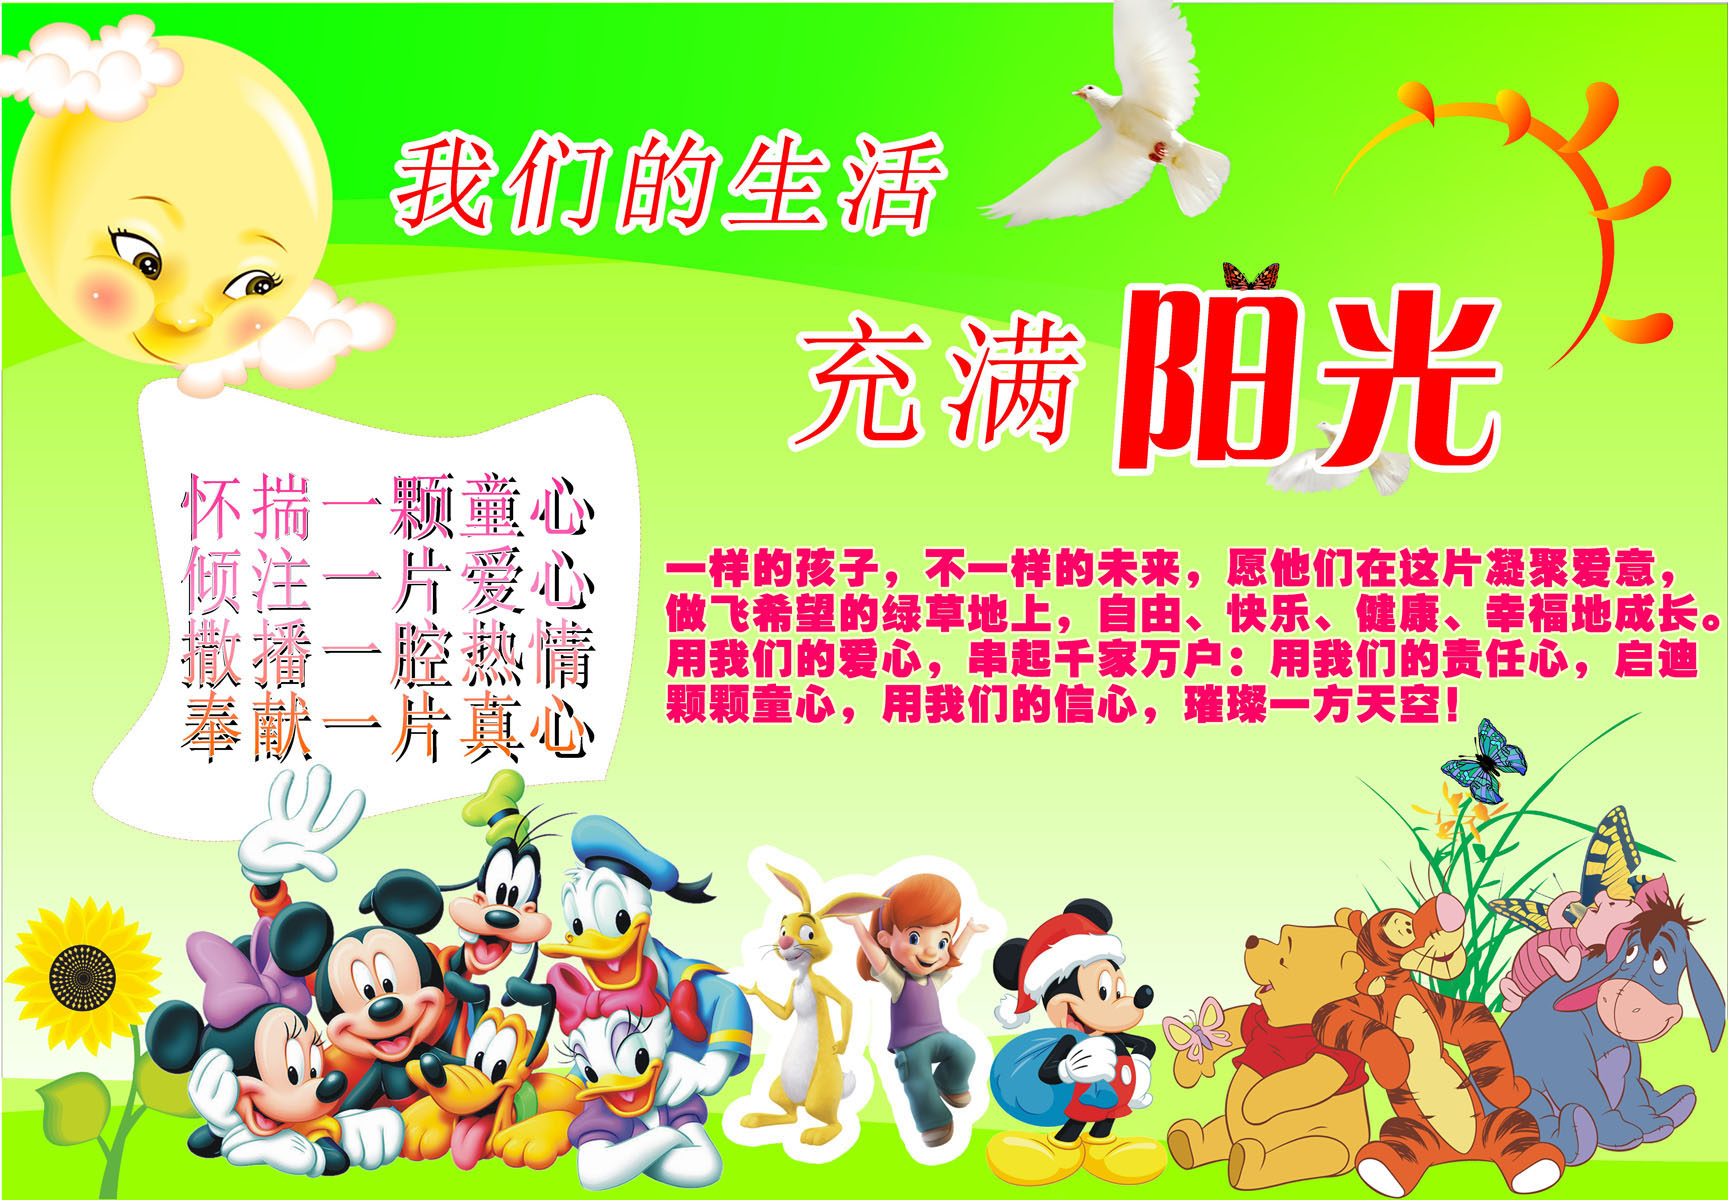 China Cartoons Quotes Life China Cartoons Quotes Life Shopping